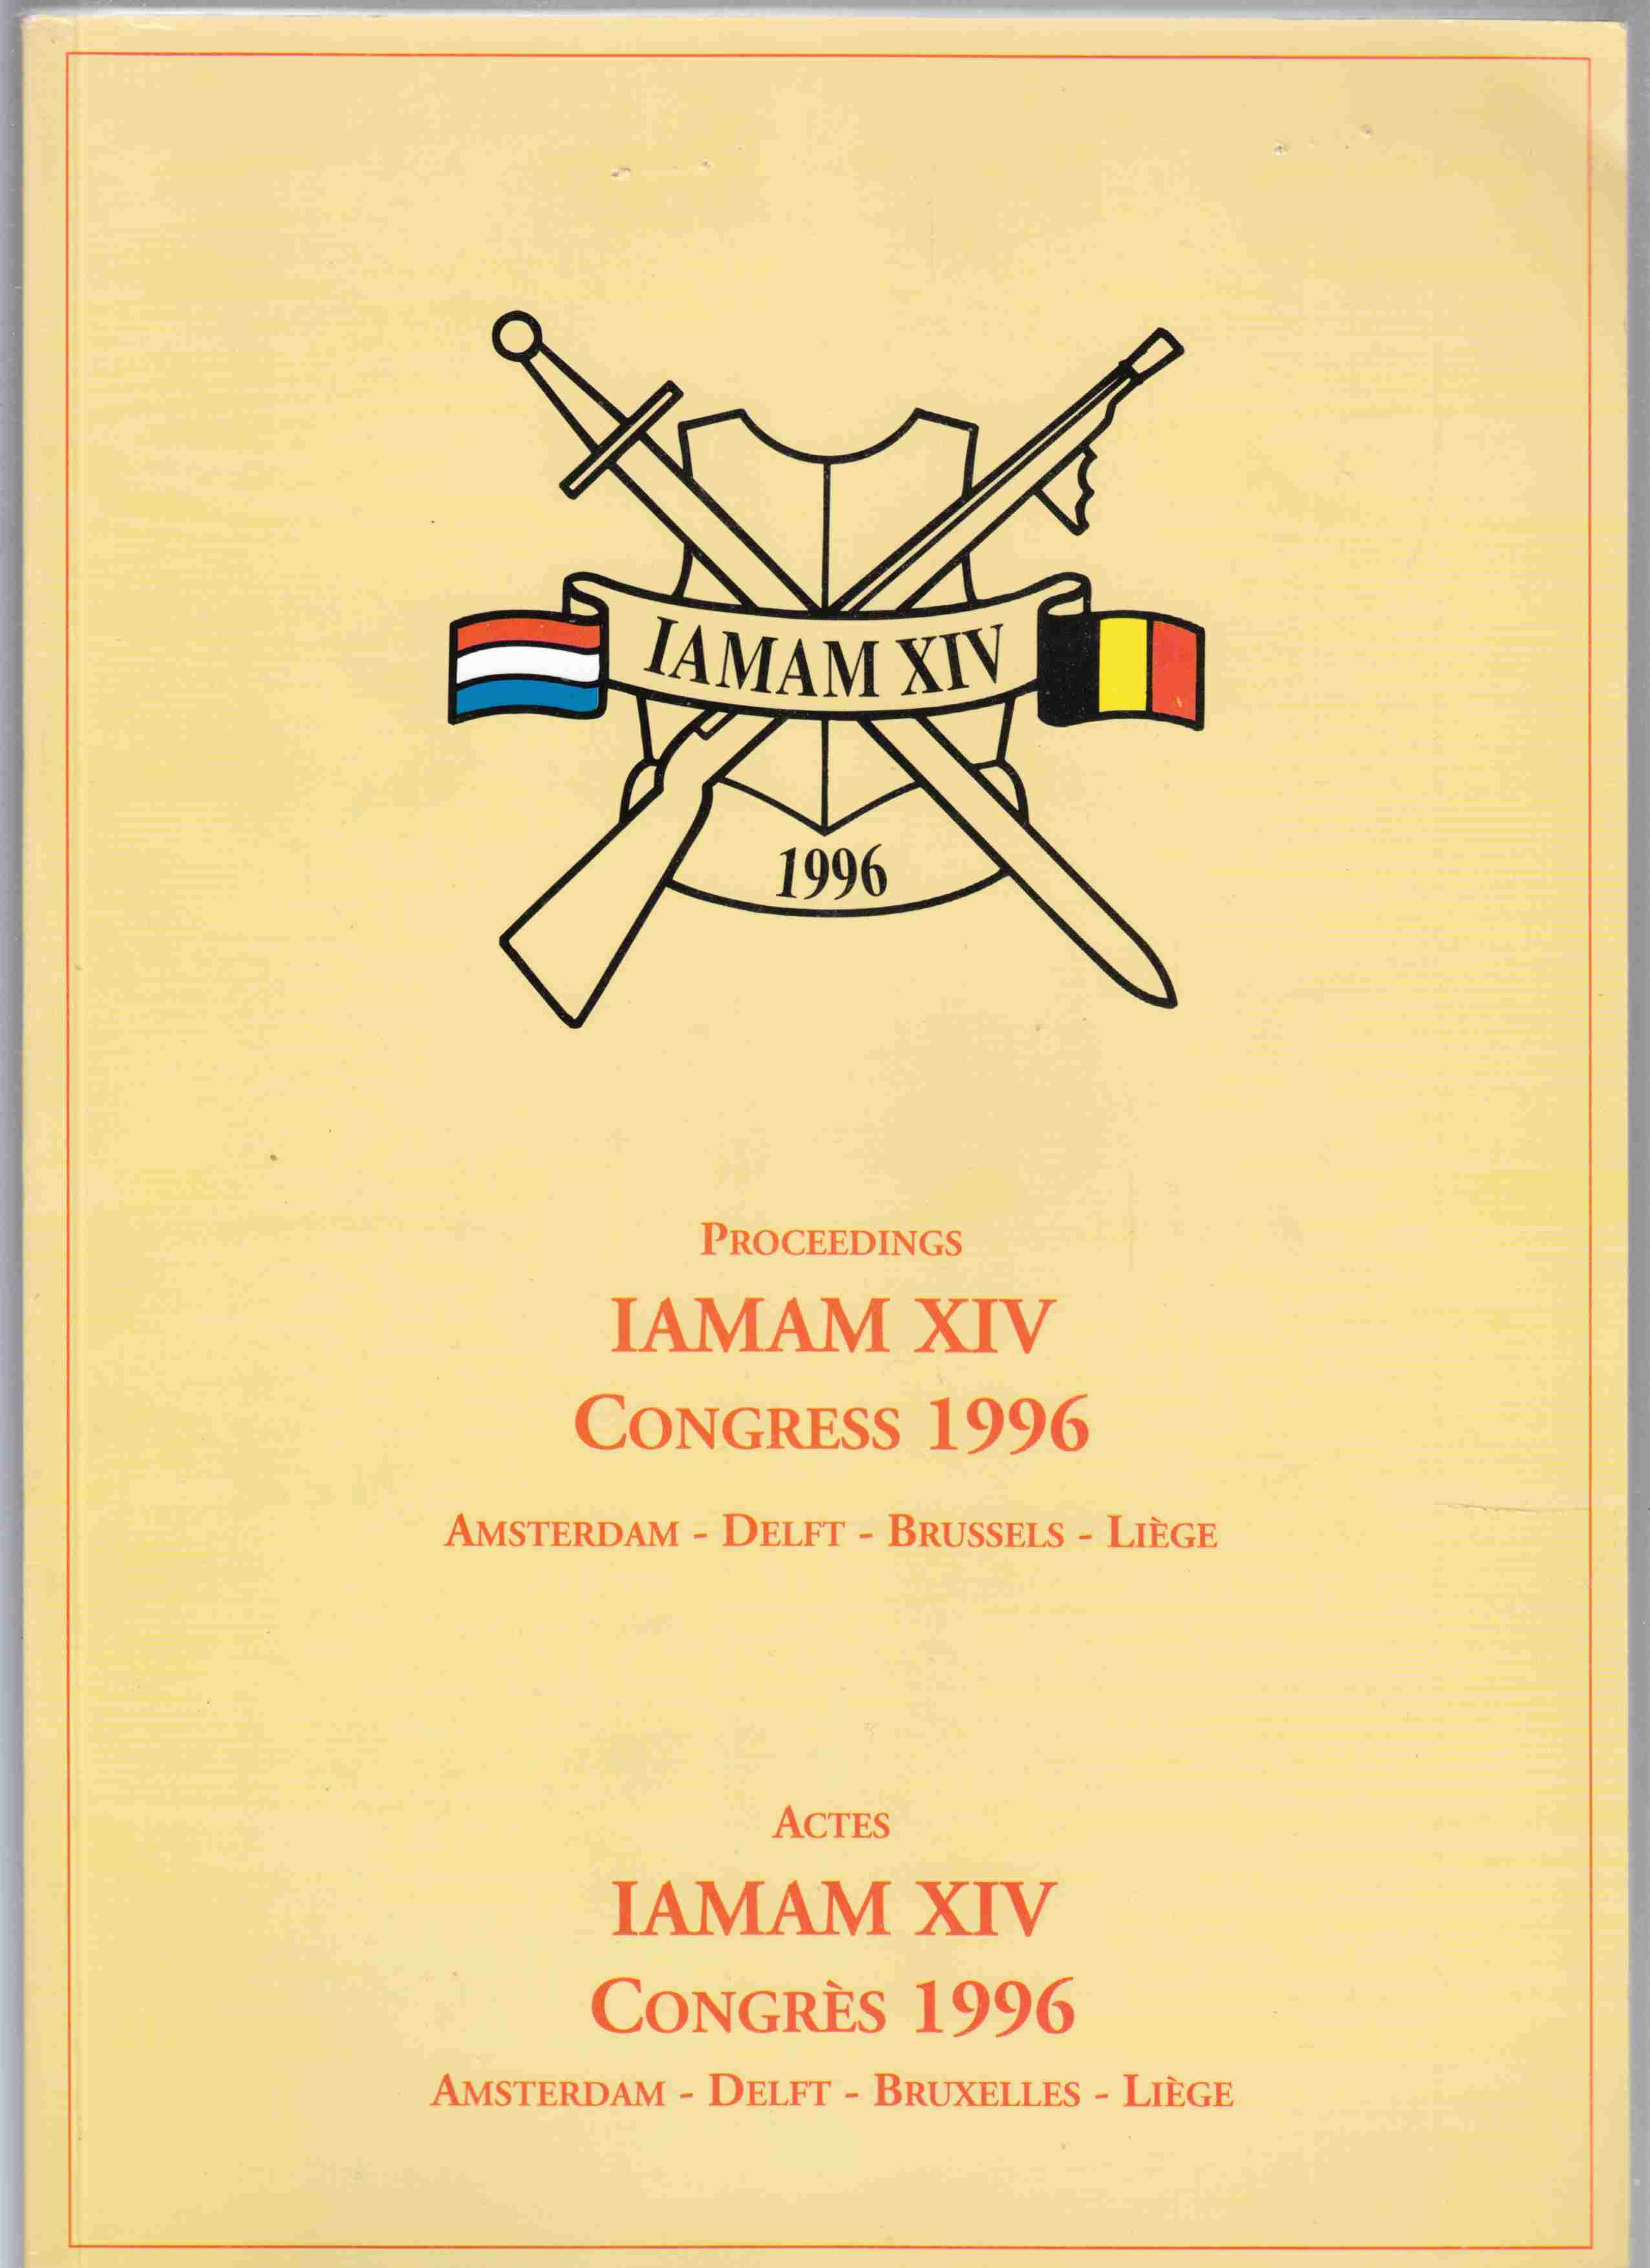 Image for Proceedings IAMAM XIV Congress 1991 / Actes IAMAM XIV Congres 1996 Amsterdam - Delft - Brussels - Liege